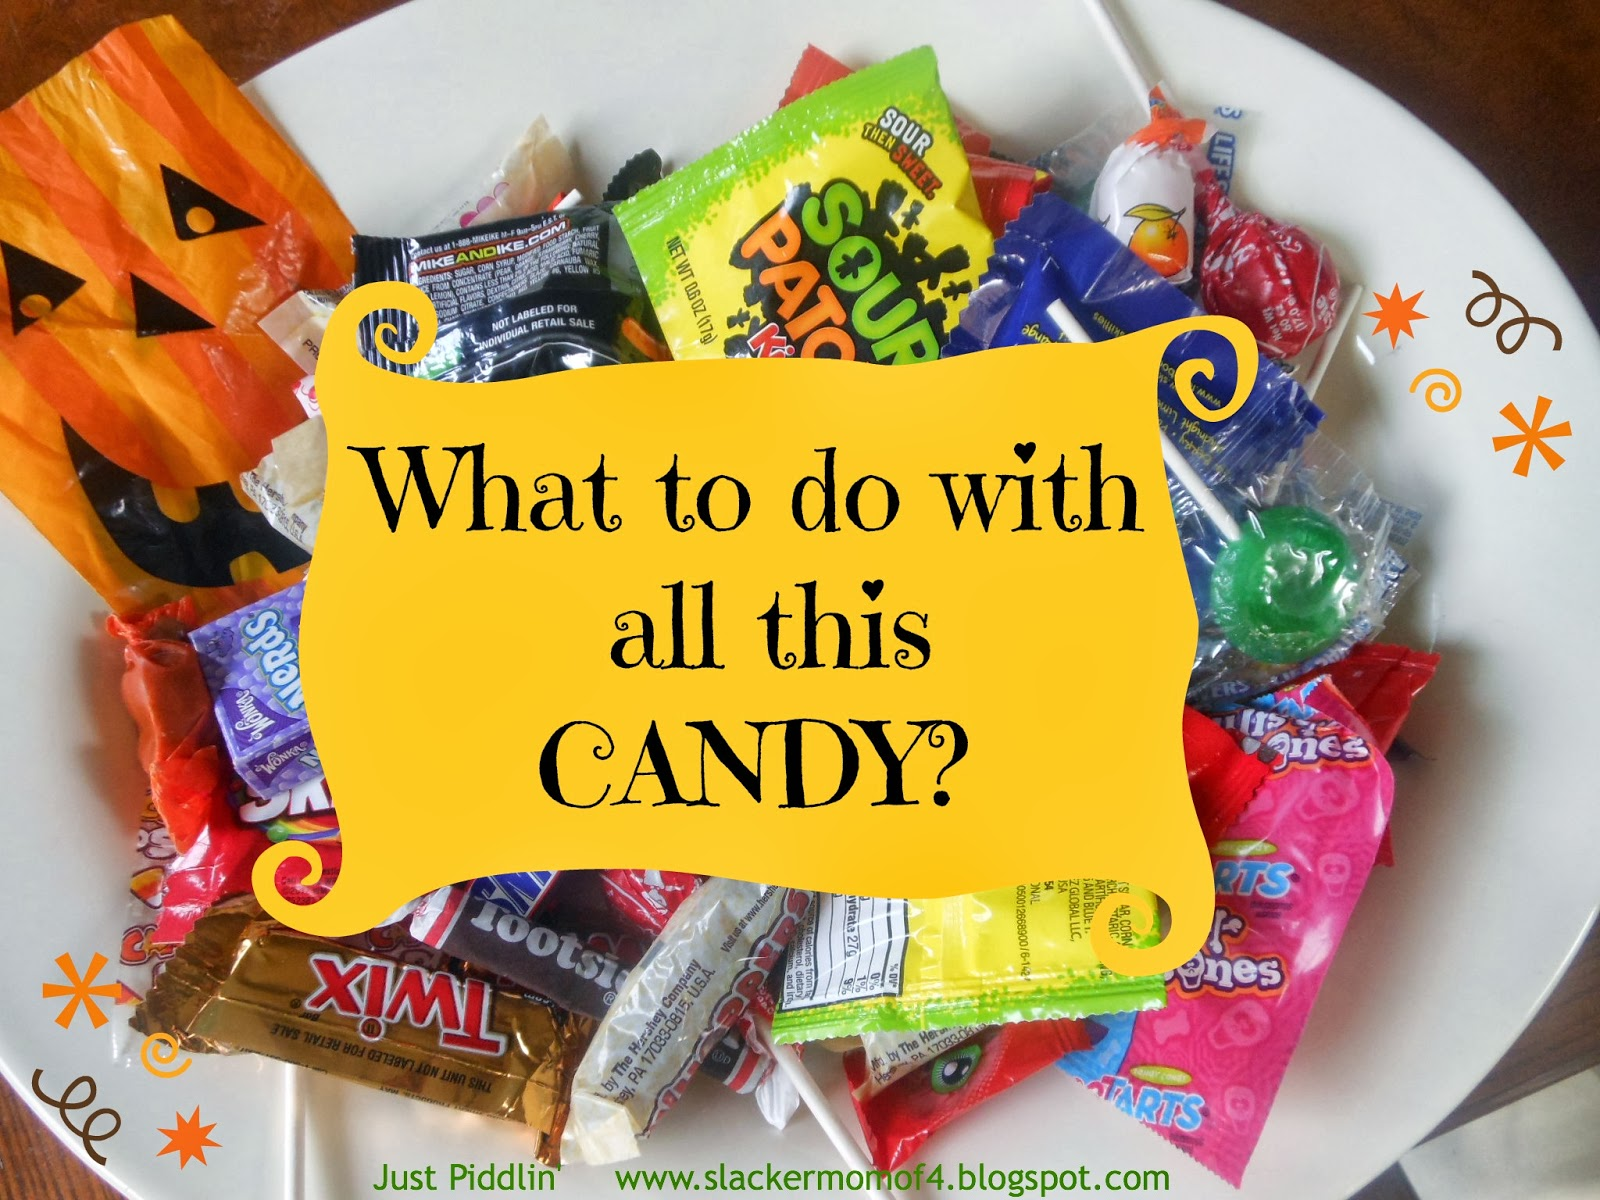 just piddlin': 5 uses for all that halloween candy